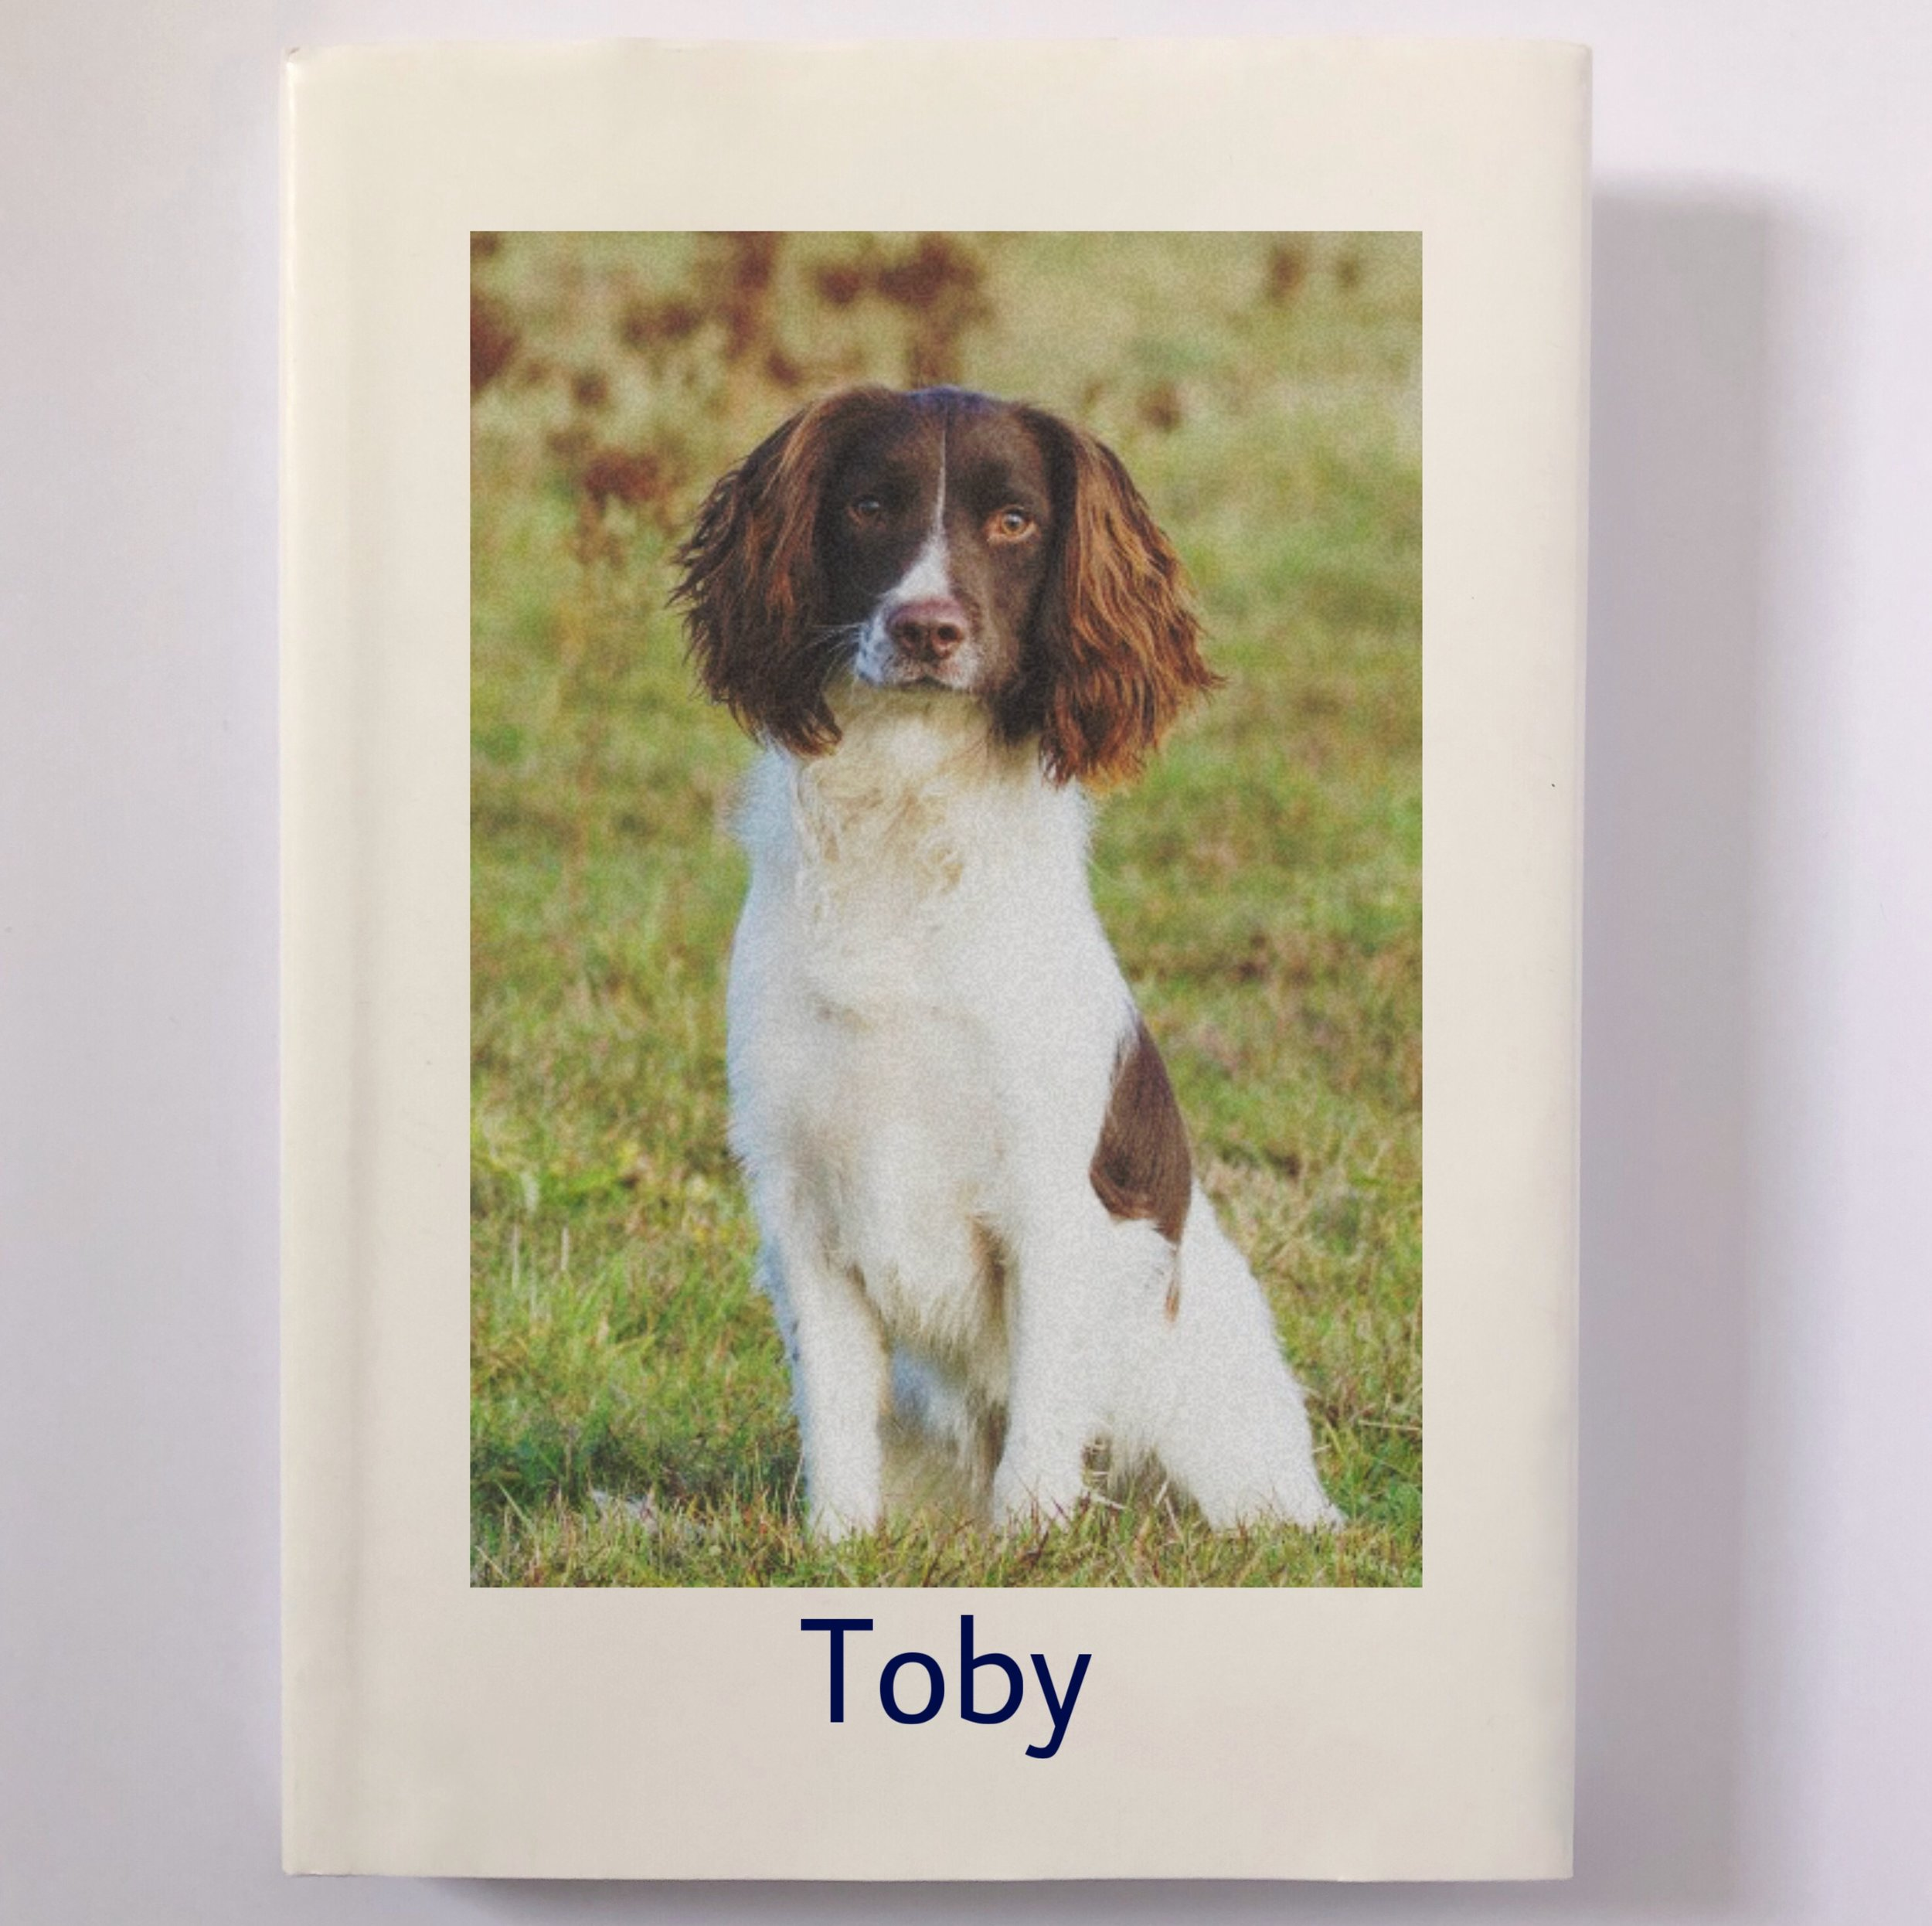 When my dad lost his beloved Spaniel, Toby, due to old age I wanted to find a birthday present for him that would have more of a personal touch. A friend directed me to Yvette's website and together we completed a lovely book about Toby, mentioning all the things he liked to do, his special relationship with my dad, and lots of photos. I also had a portrait commissioned of Toby, completed by the talented Chloe, which captured him remarkably. My dad was overjoyed and the picture hangs in the living room and the book is permanently placed on the coffee table. It's a wonderful present and helped my dad remember the good times with his pal. Yvette is lovely to work with and I really enjoyed completing this special project. Thank you so much. (HS, Leeds)